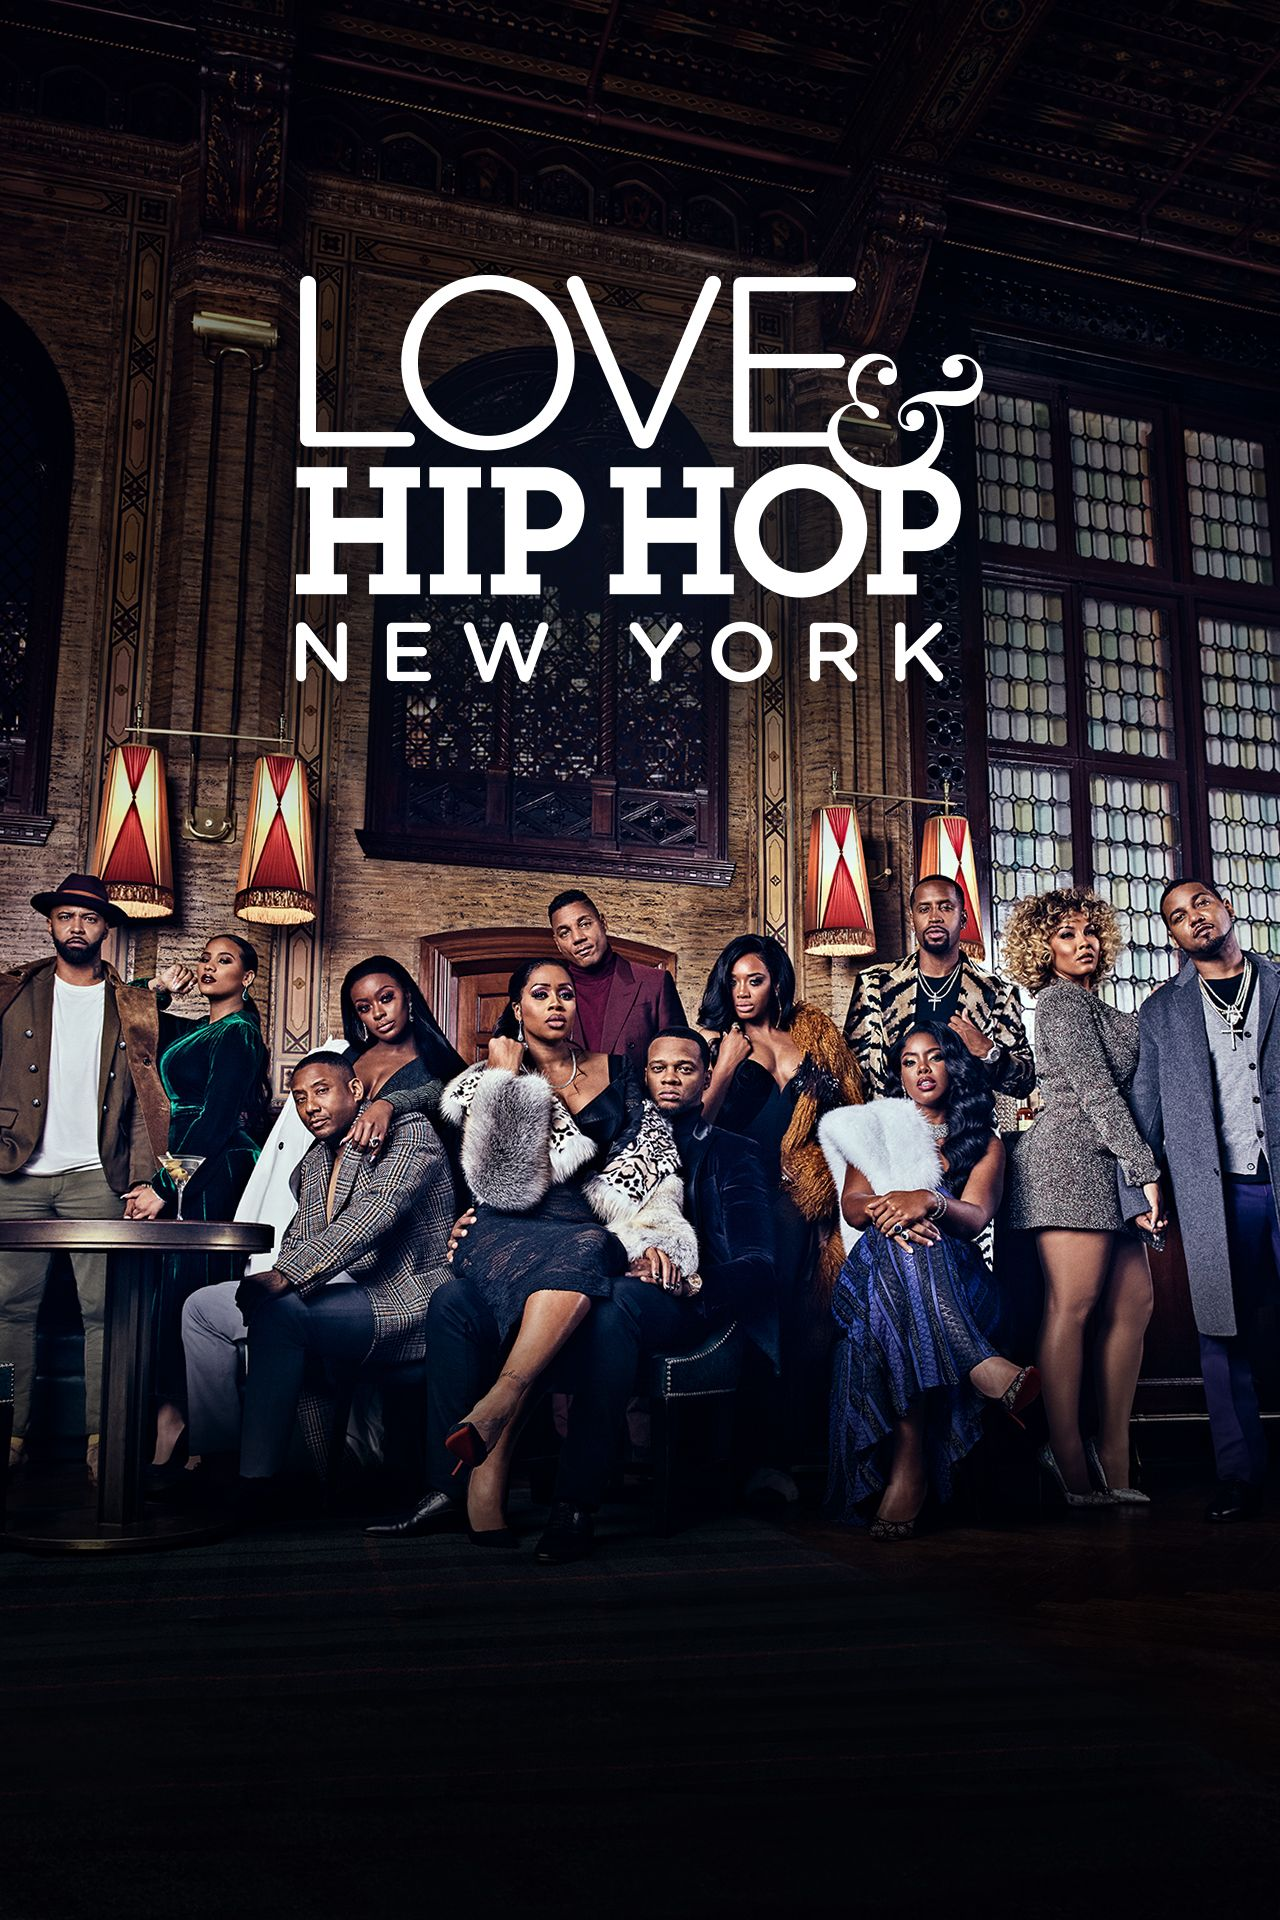 Love and hip hop cast new york